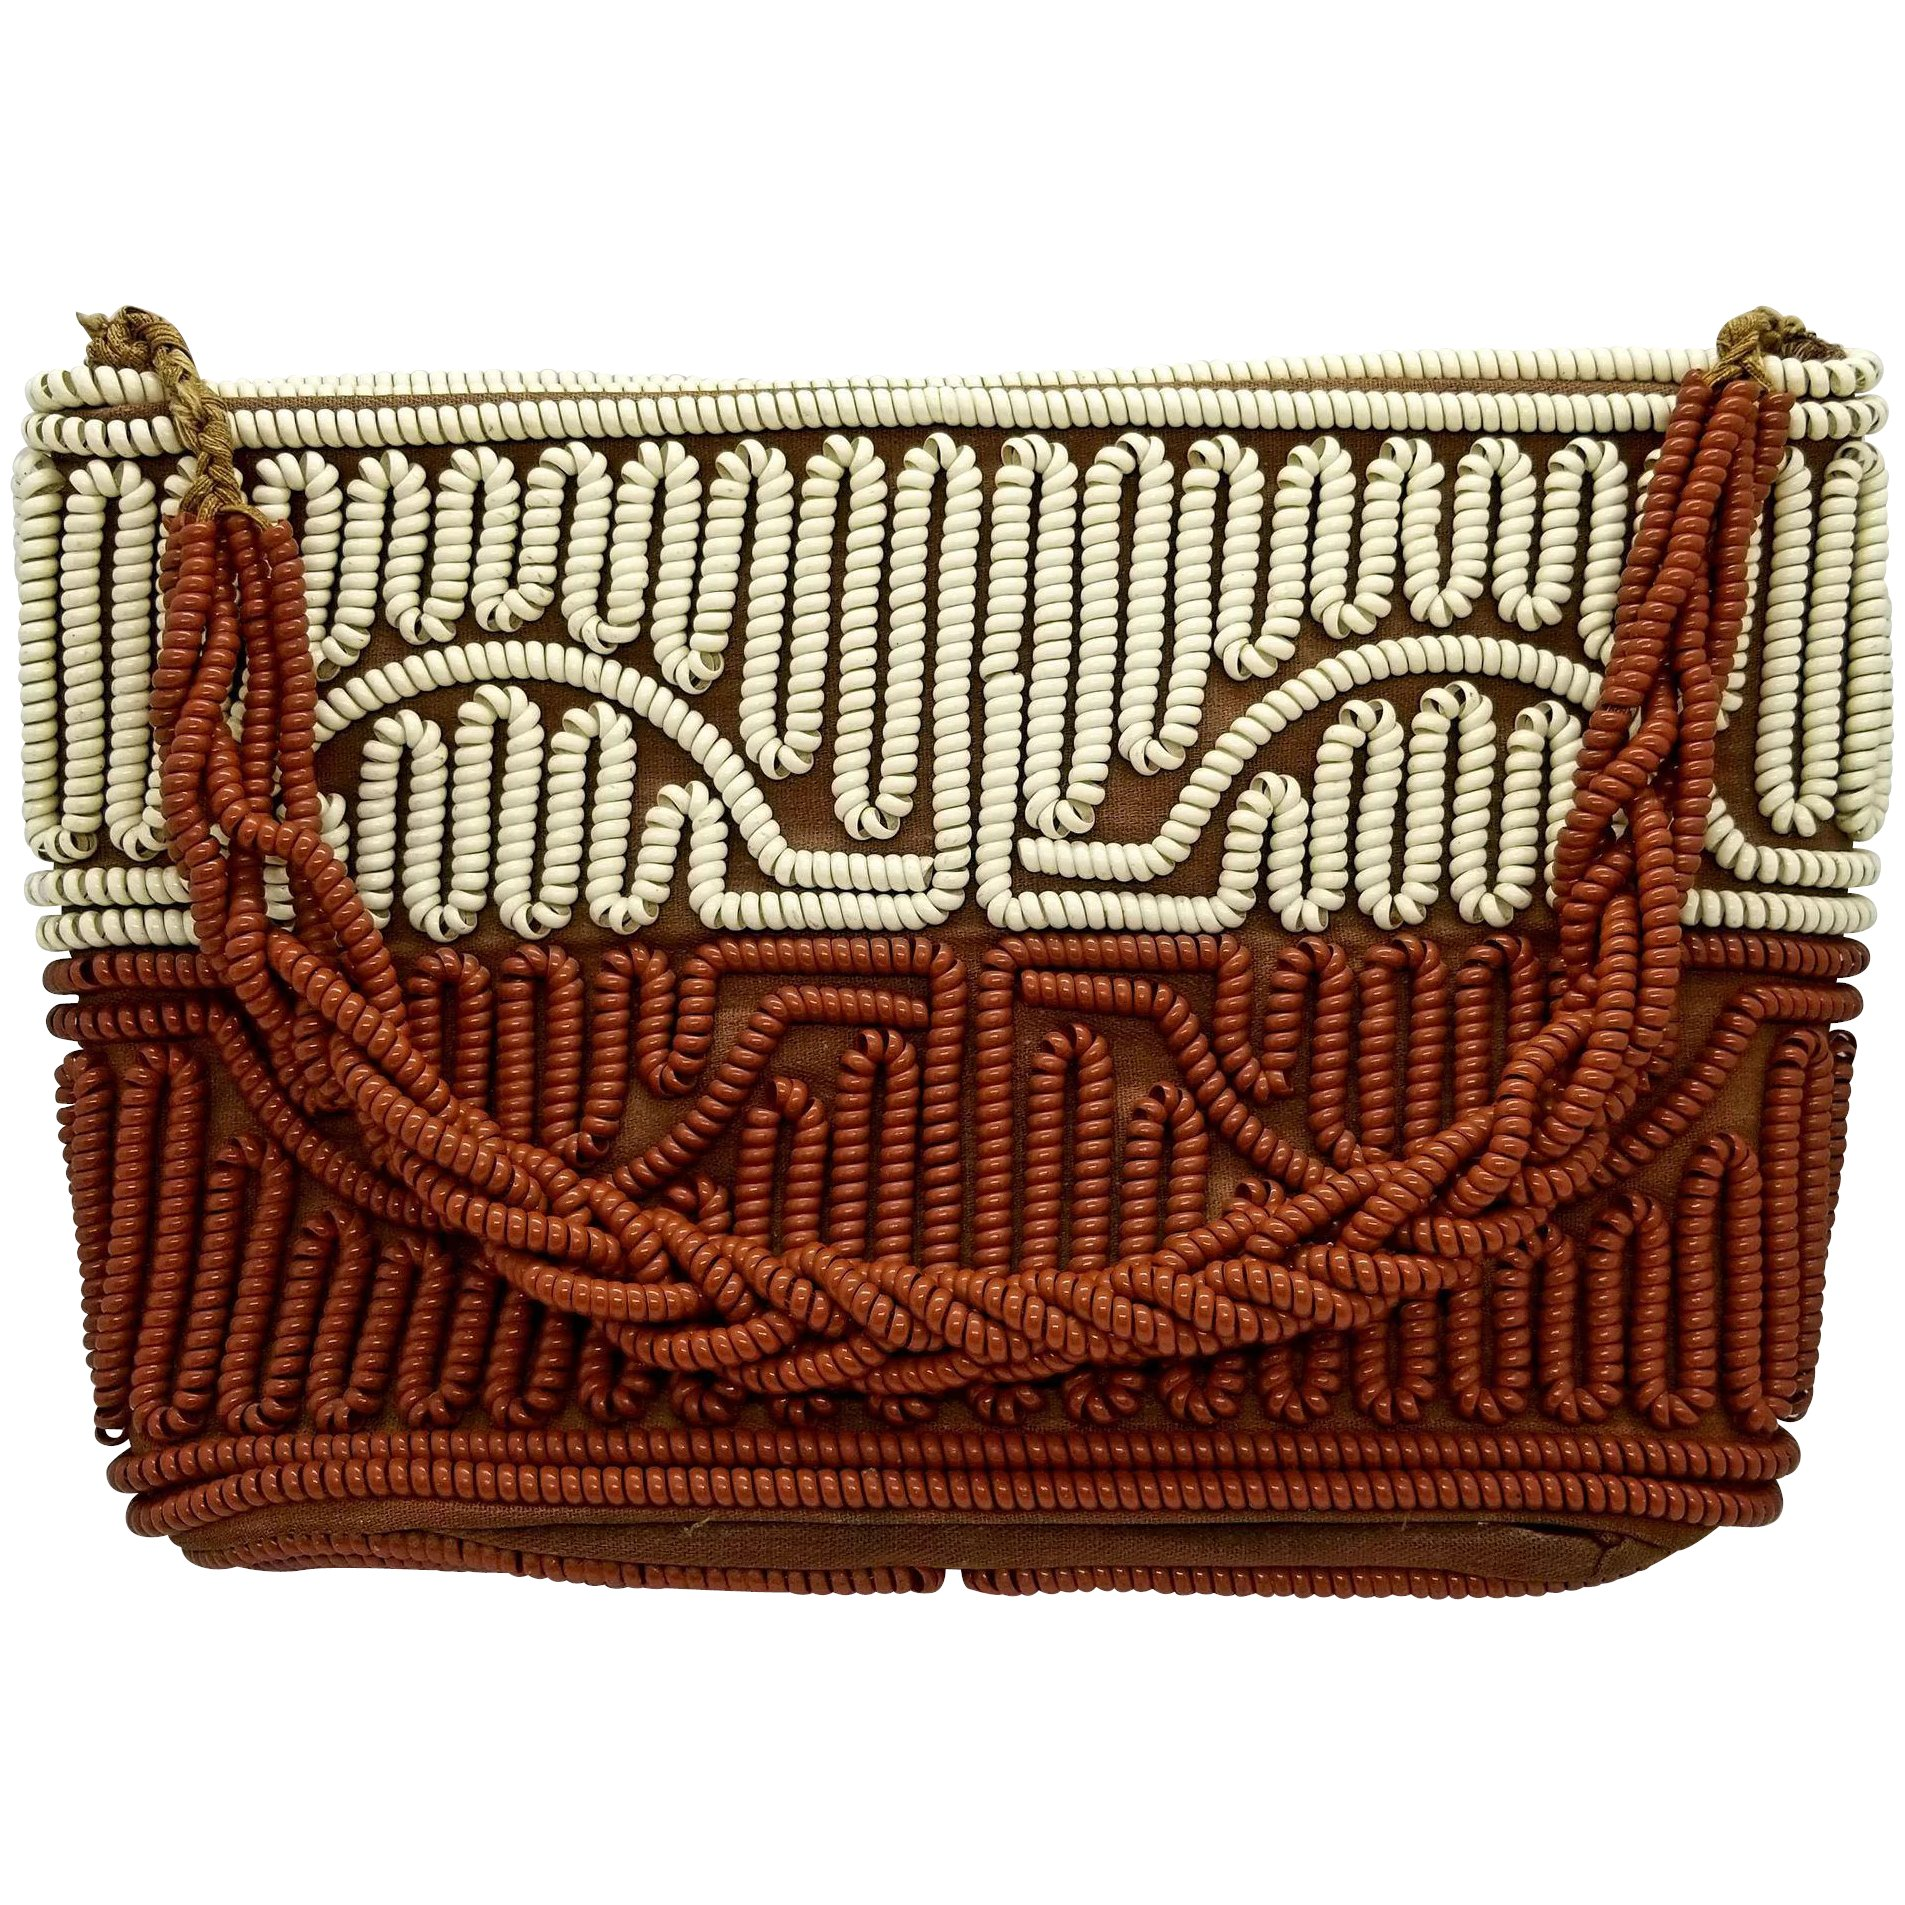 Vintage Telephone Cord Purse Handbag 1950s Brown And Cream Click To Expand